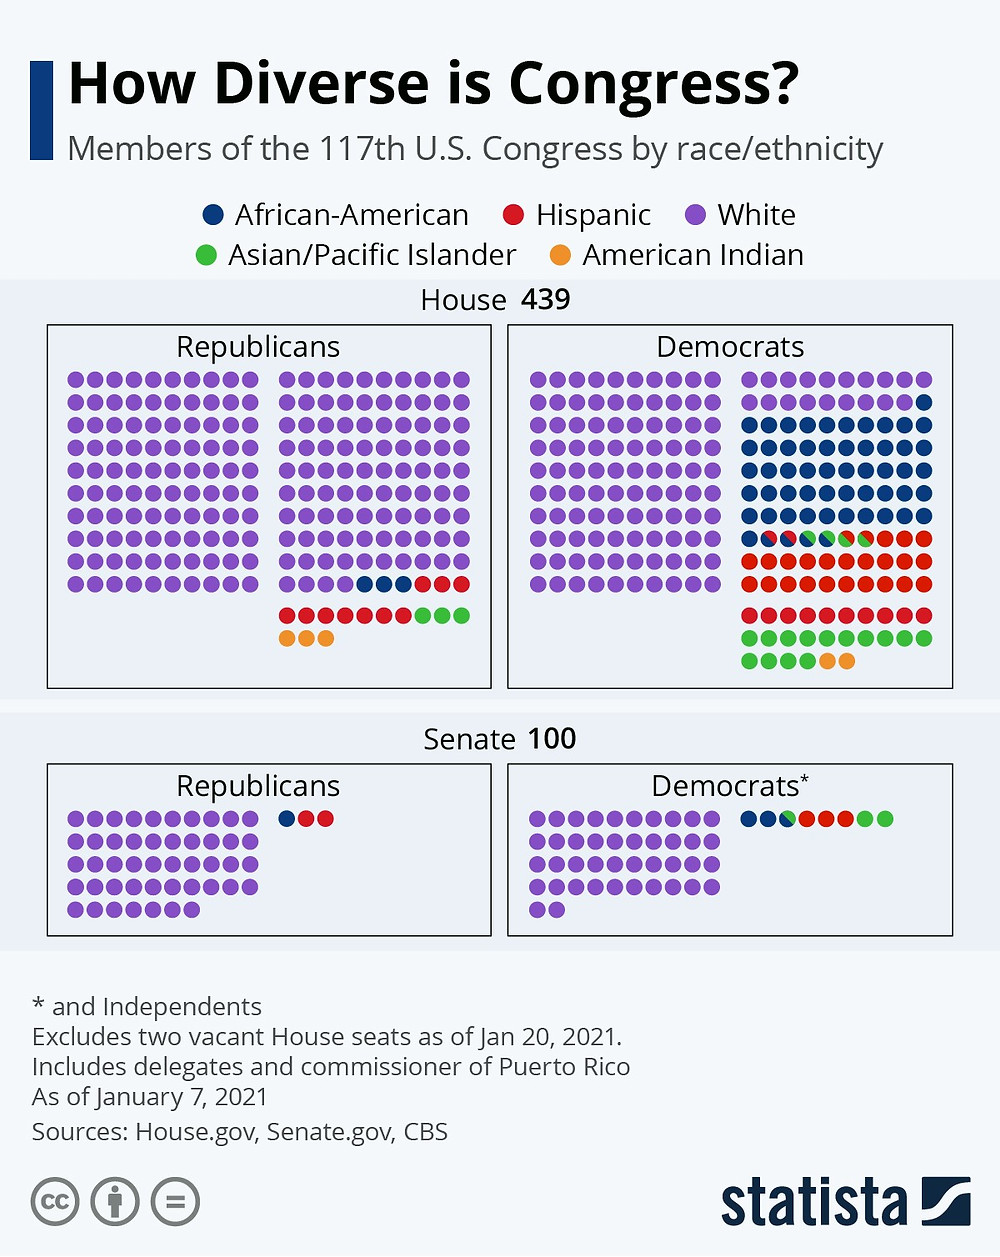 Icon arrays where the racial/ethnic diversity of the House and Senate are depicted separately for Republicans and Democrats.